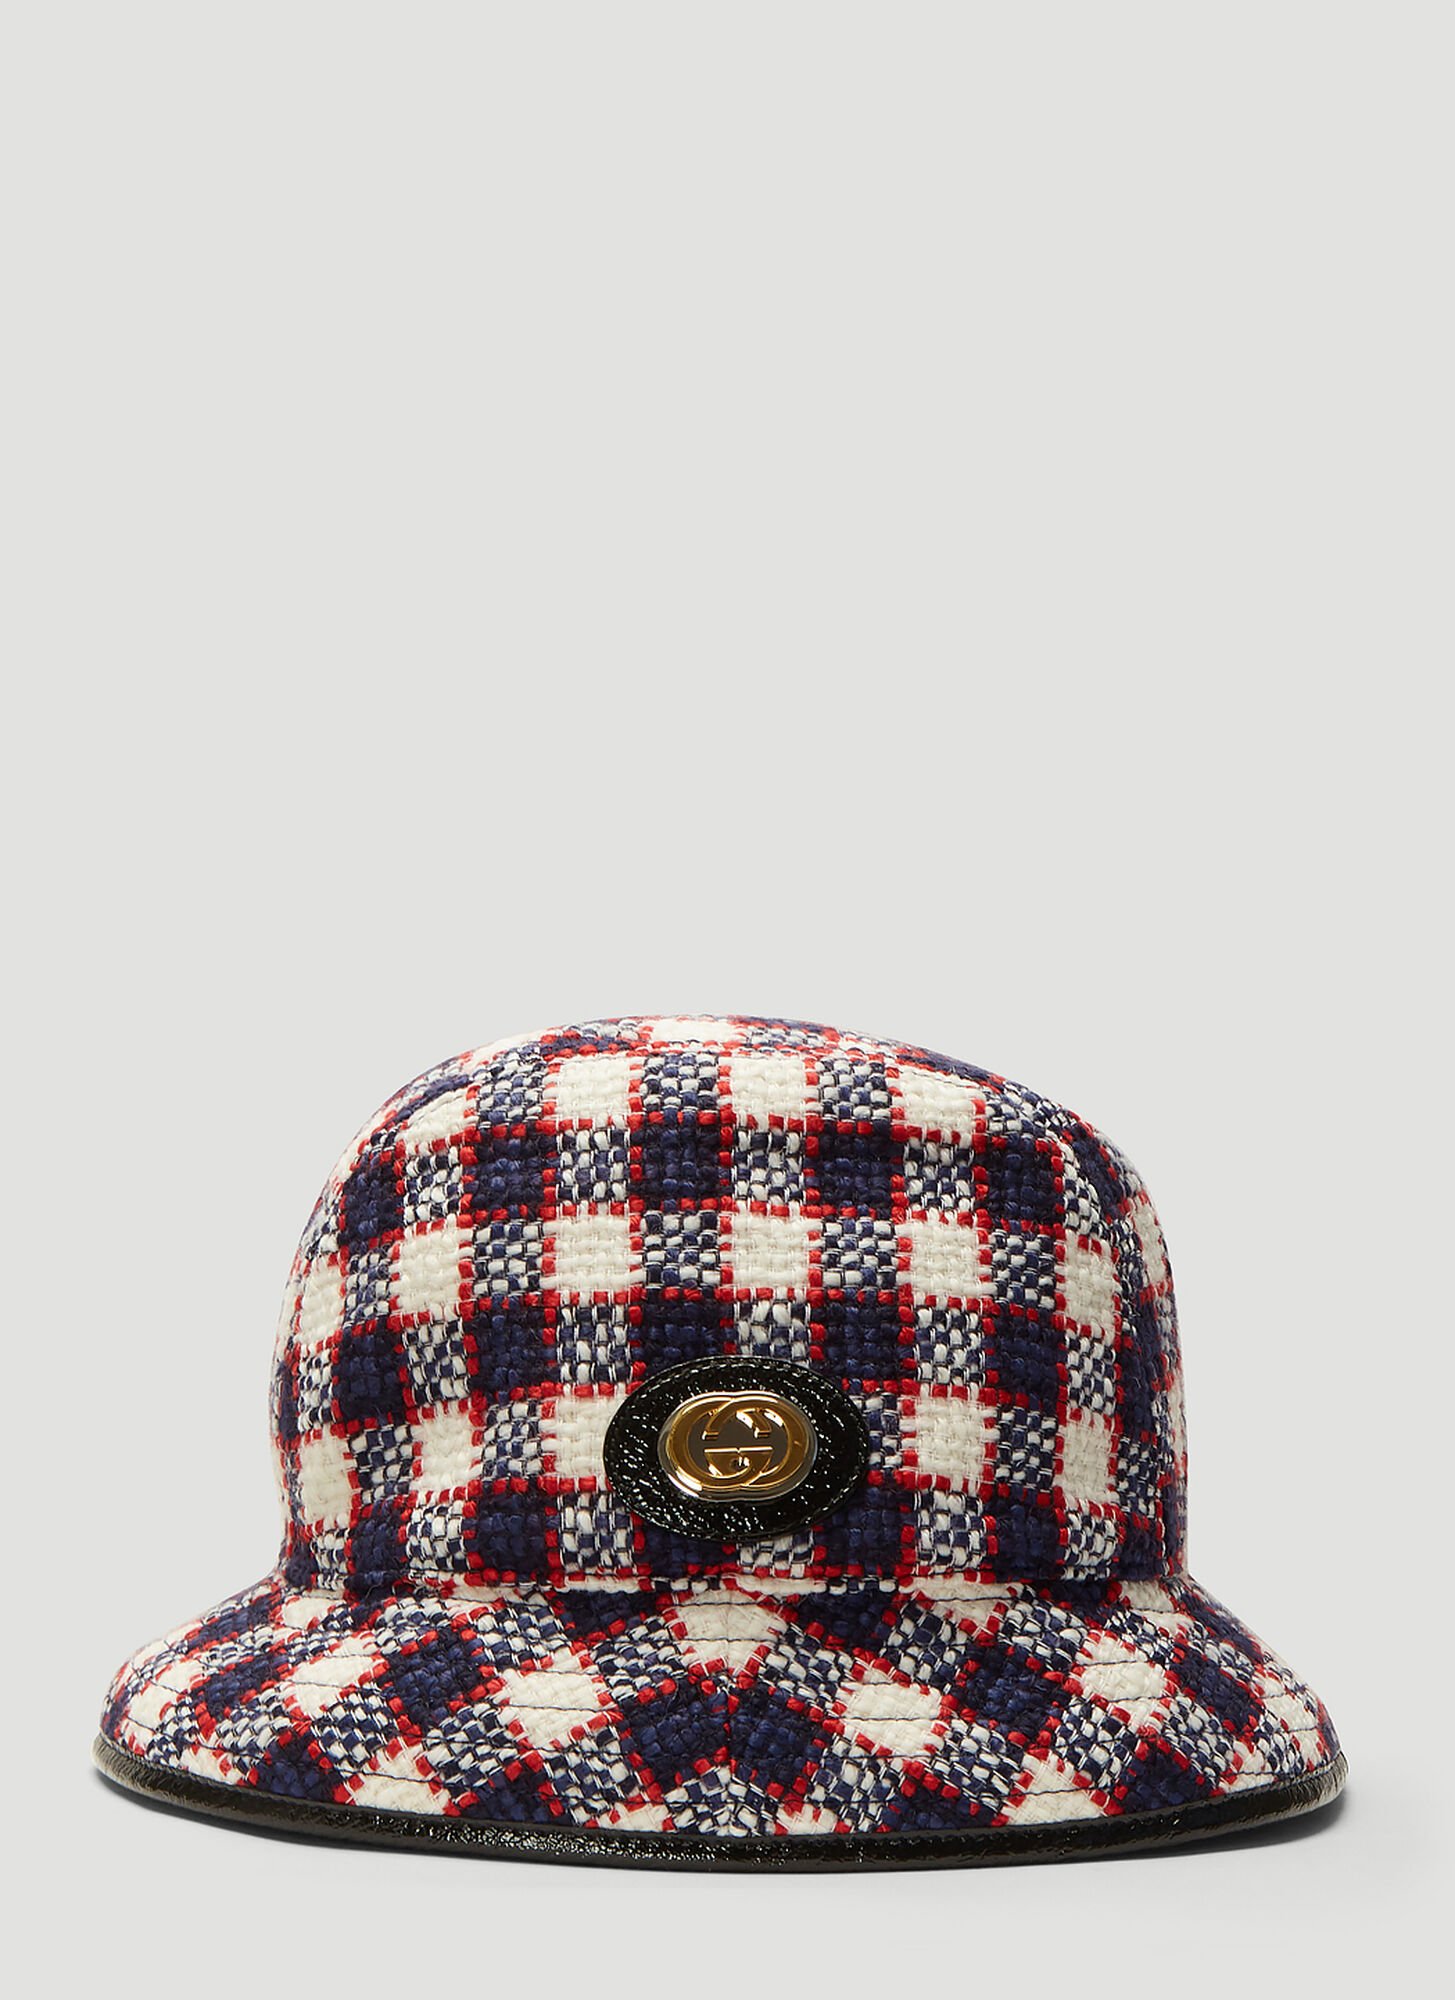 Gucci Tweed Fedora Hat in White